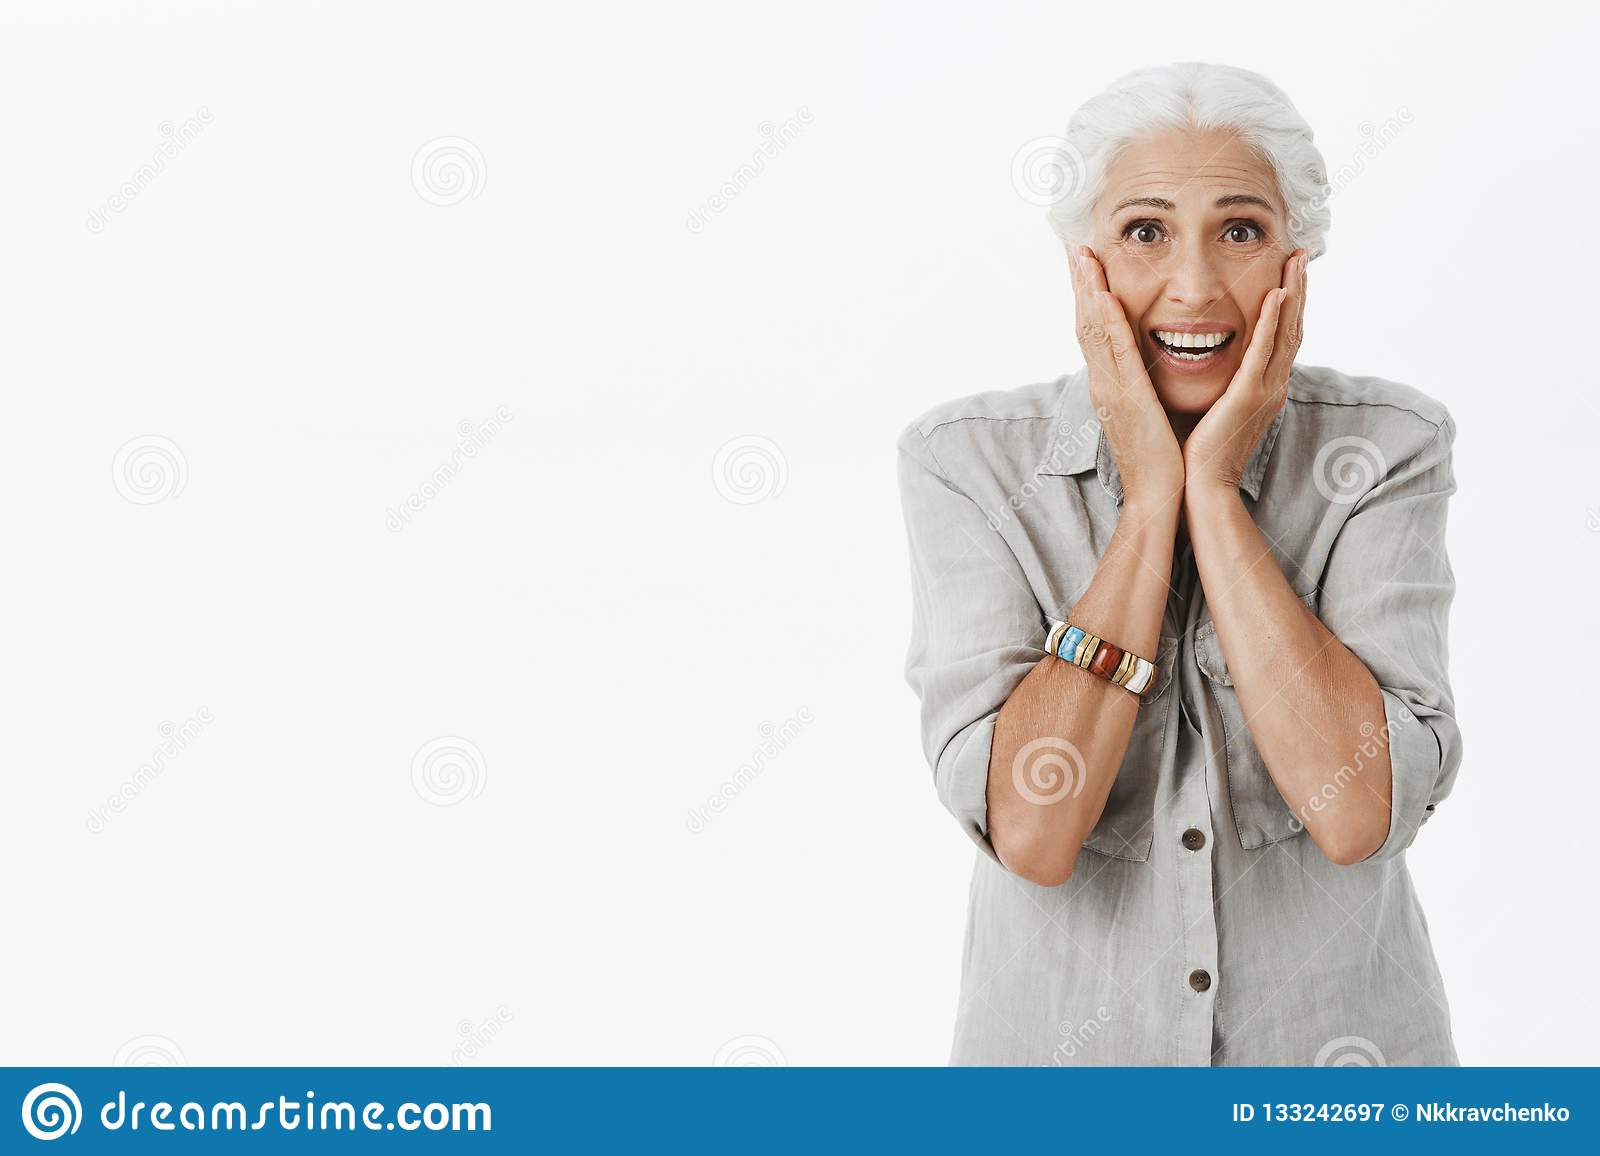 Studio shot of senior woman reacting on surprise. Portrait of touched and delighted cute old lady with white hair